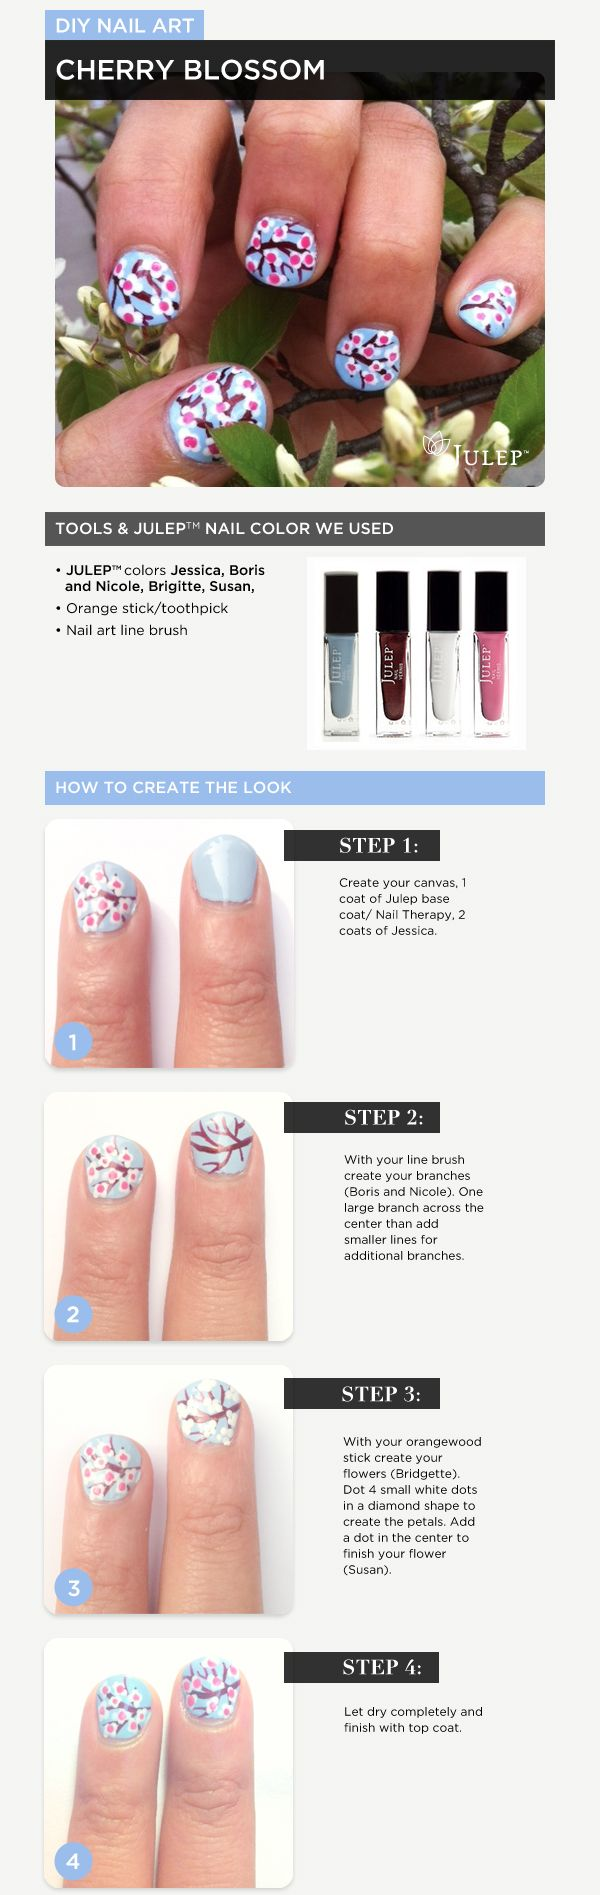 Nail of the Day: Cherry Blossom Tutorial #nails #tutorial